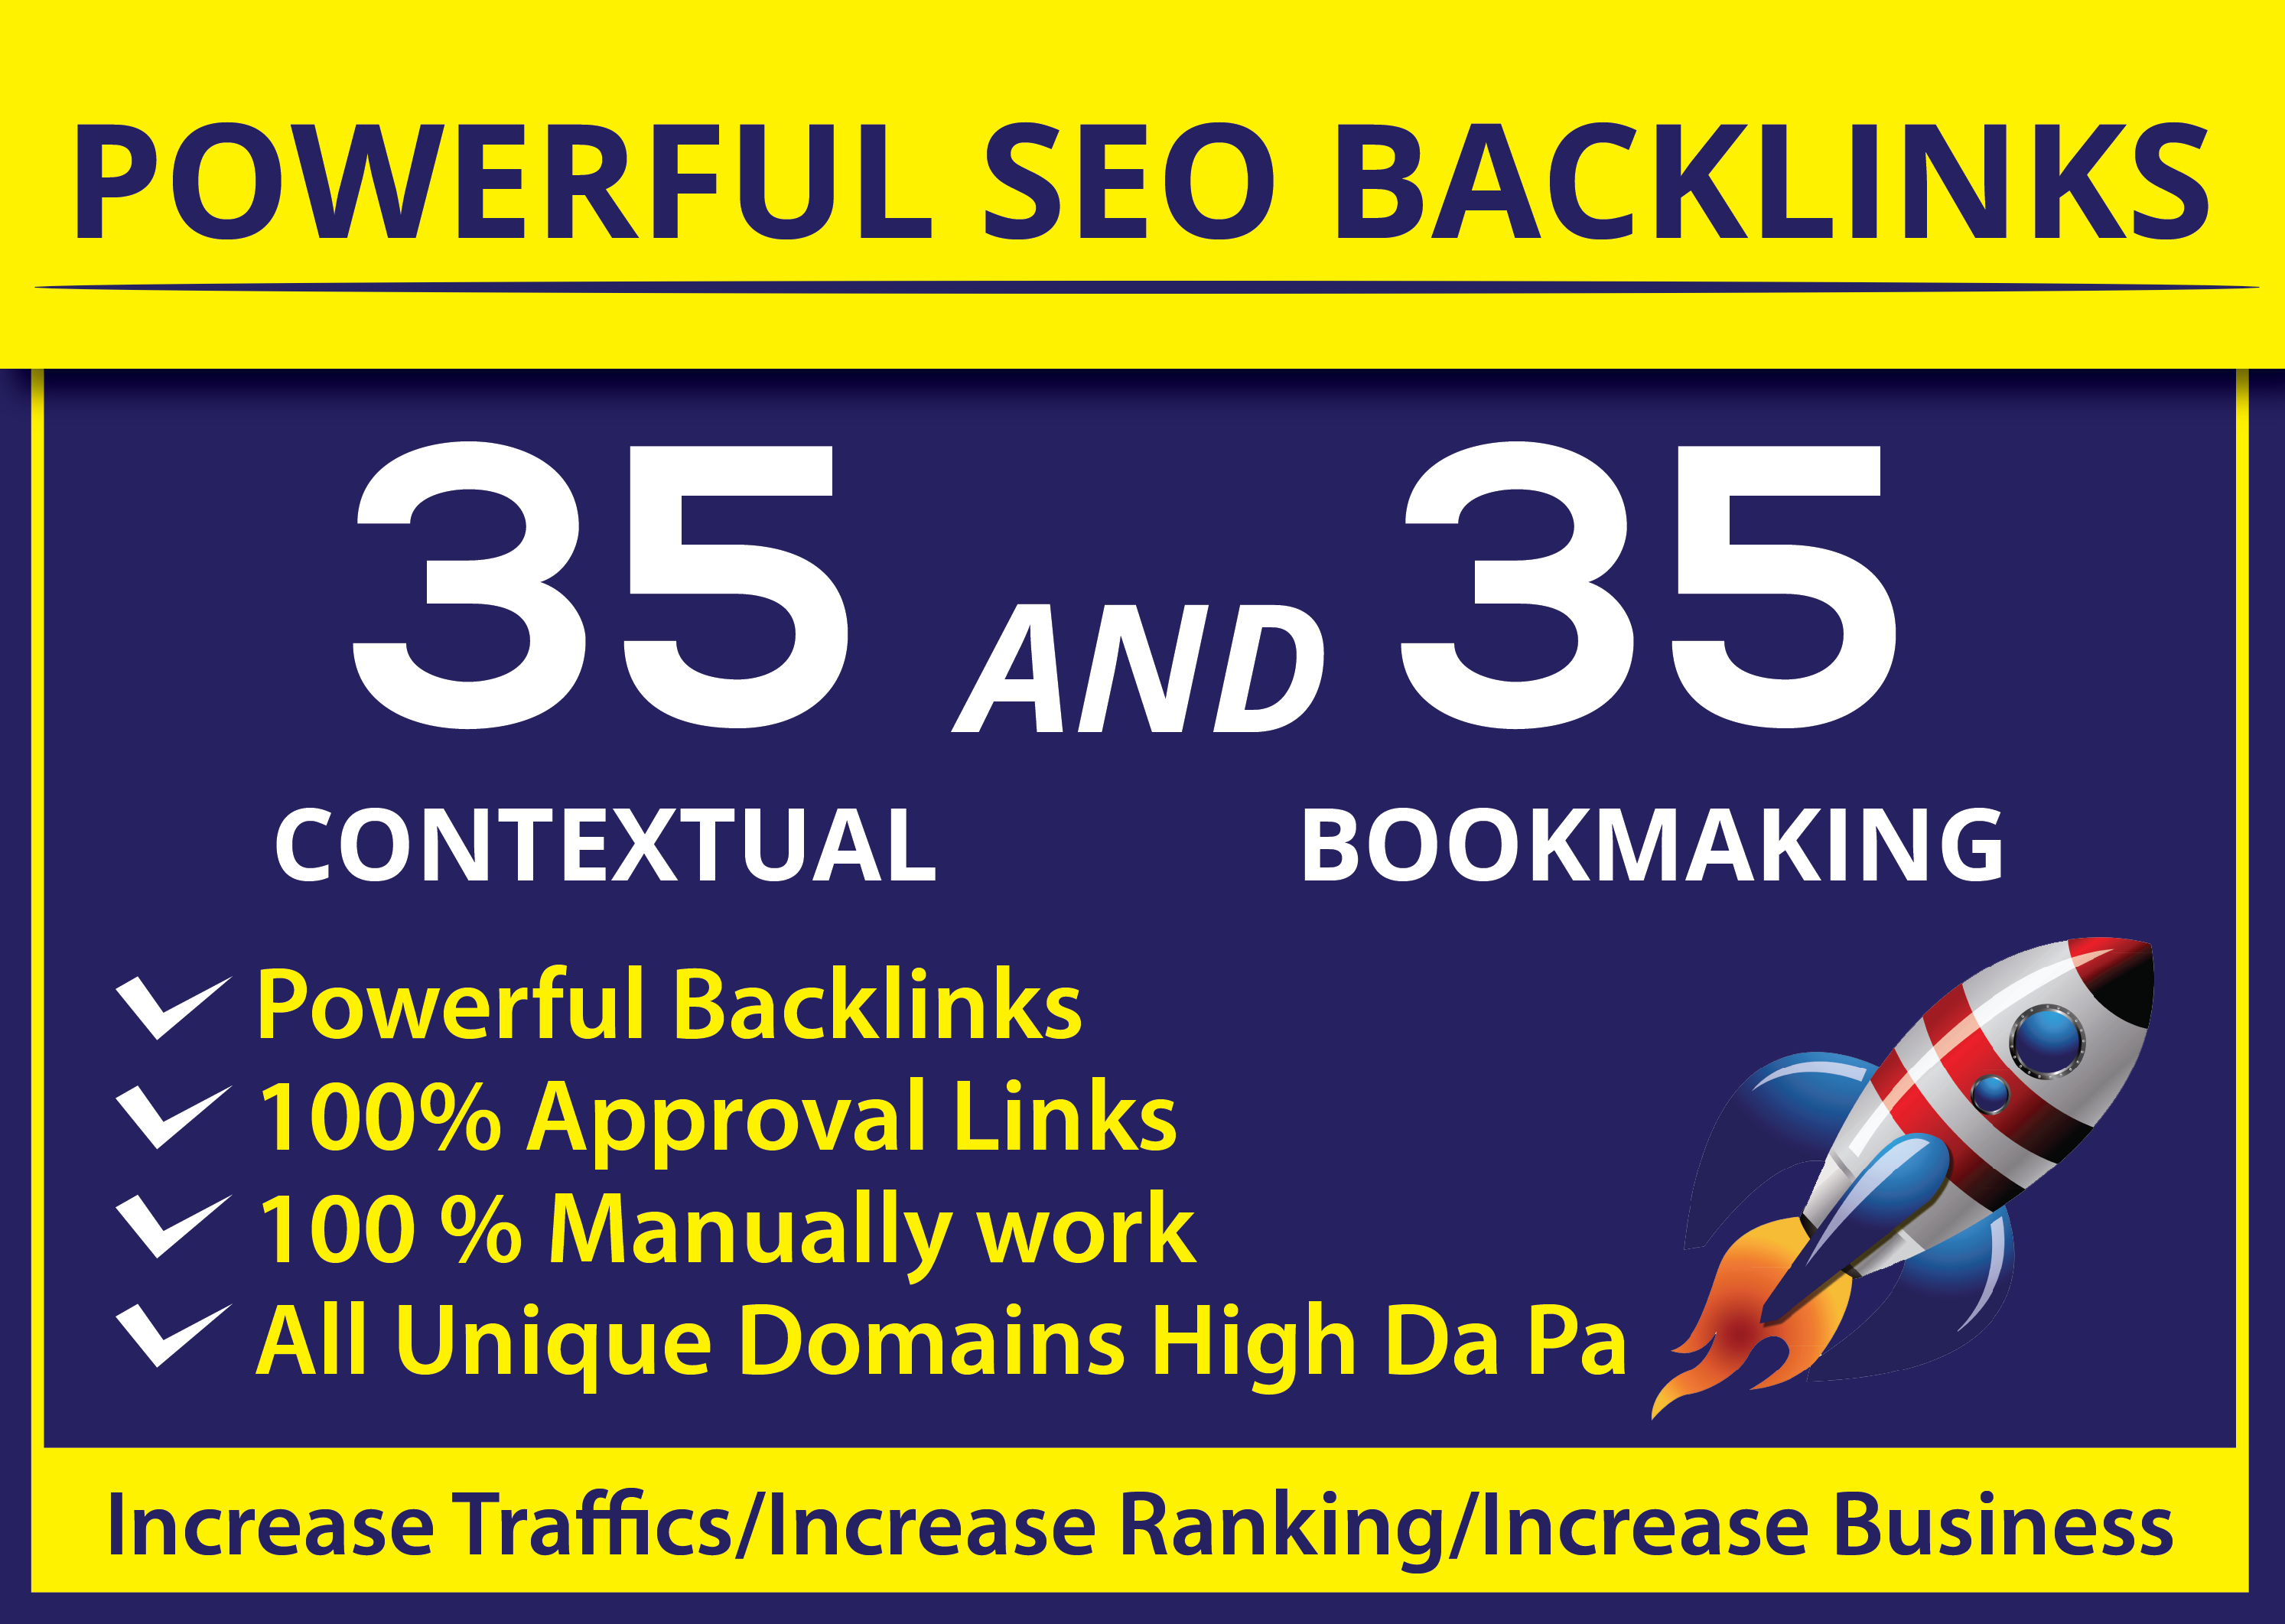 Build Seo Backlinks 35 Contextual + 35 SOCIAL Bookmaking Unique Domain High DA PA